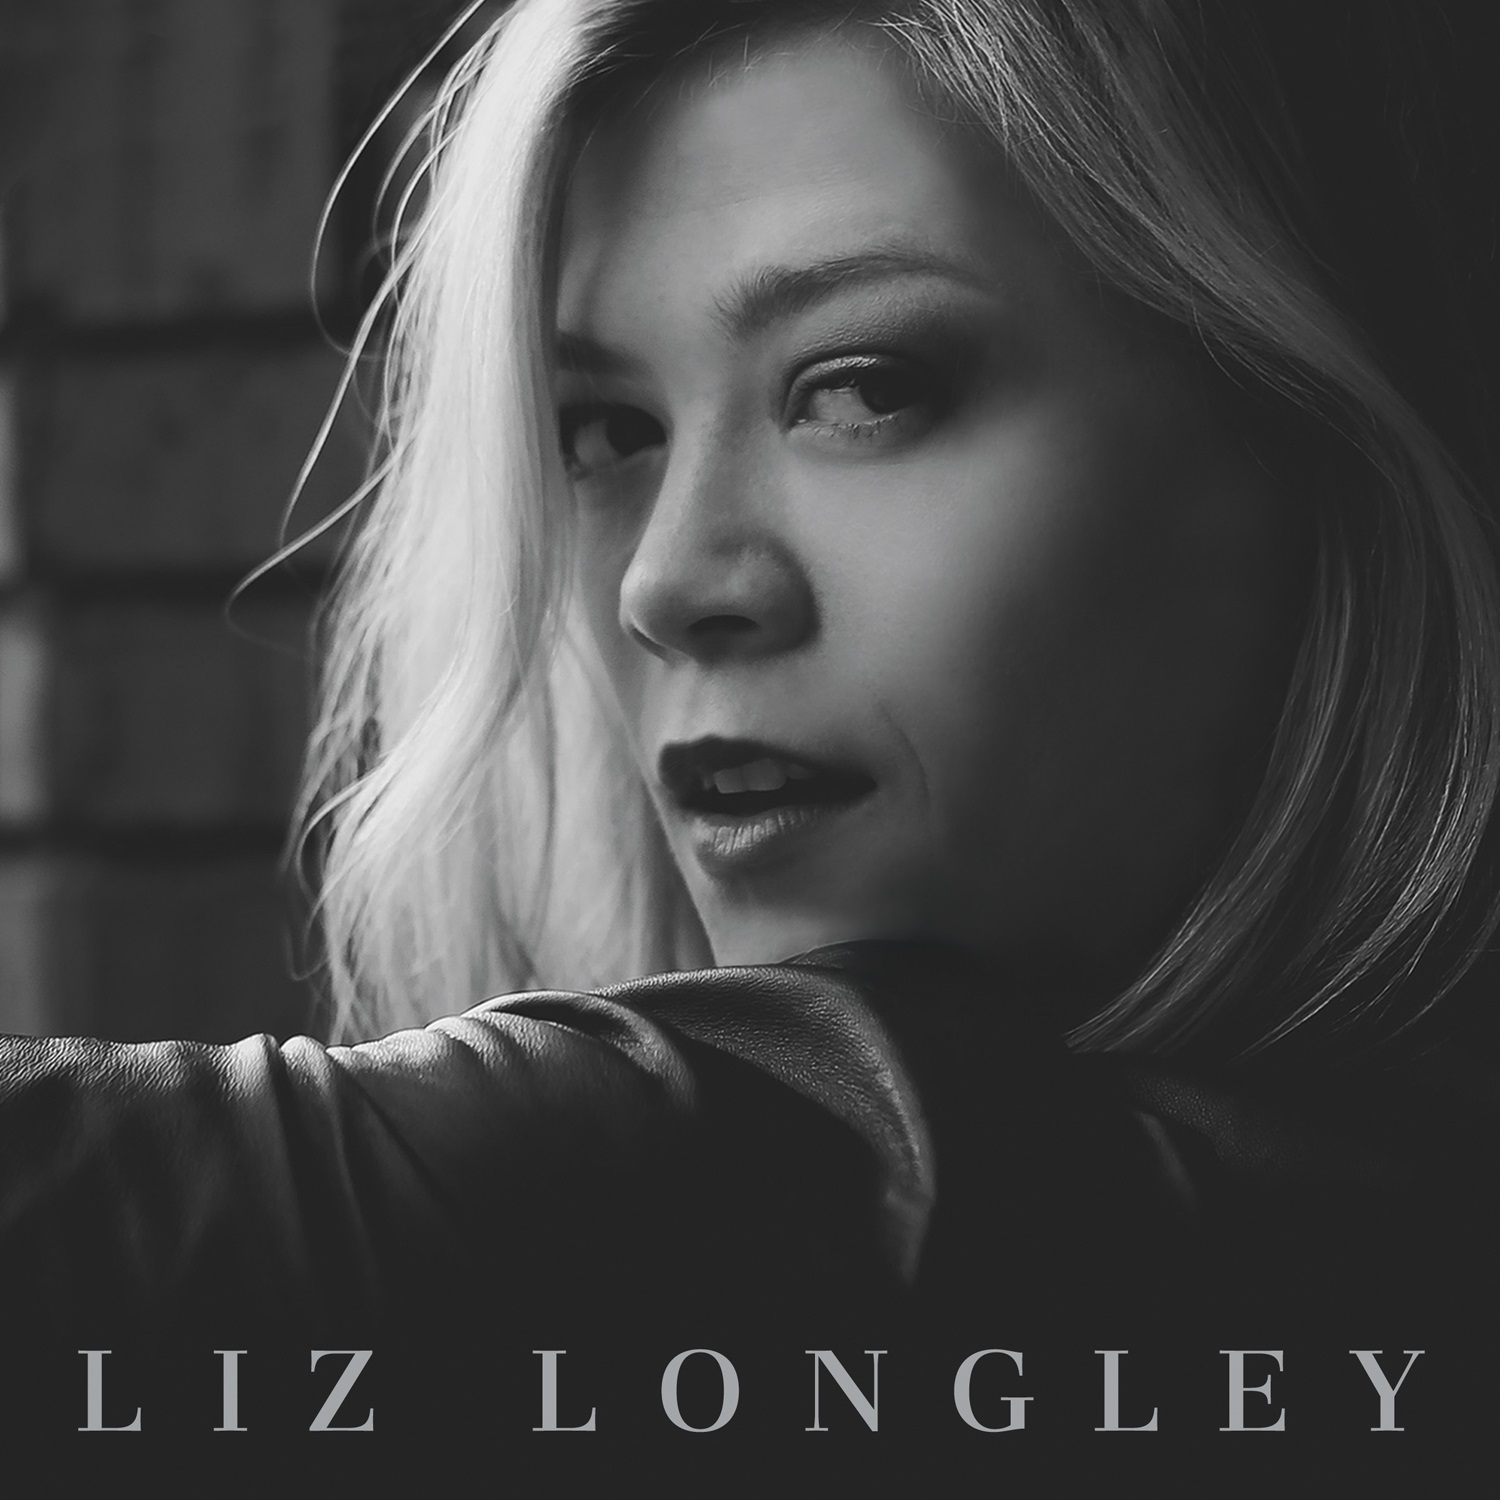 liz-longley-cover-2015.jpg